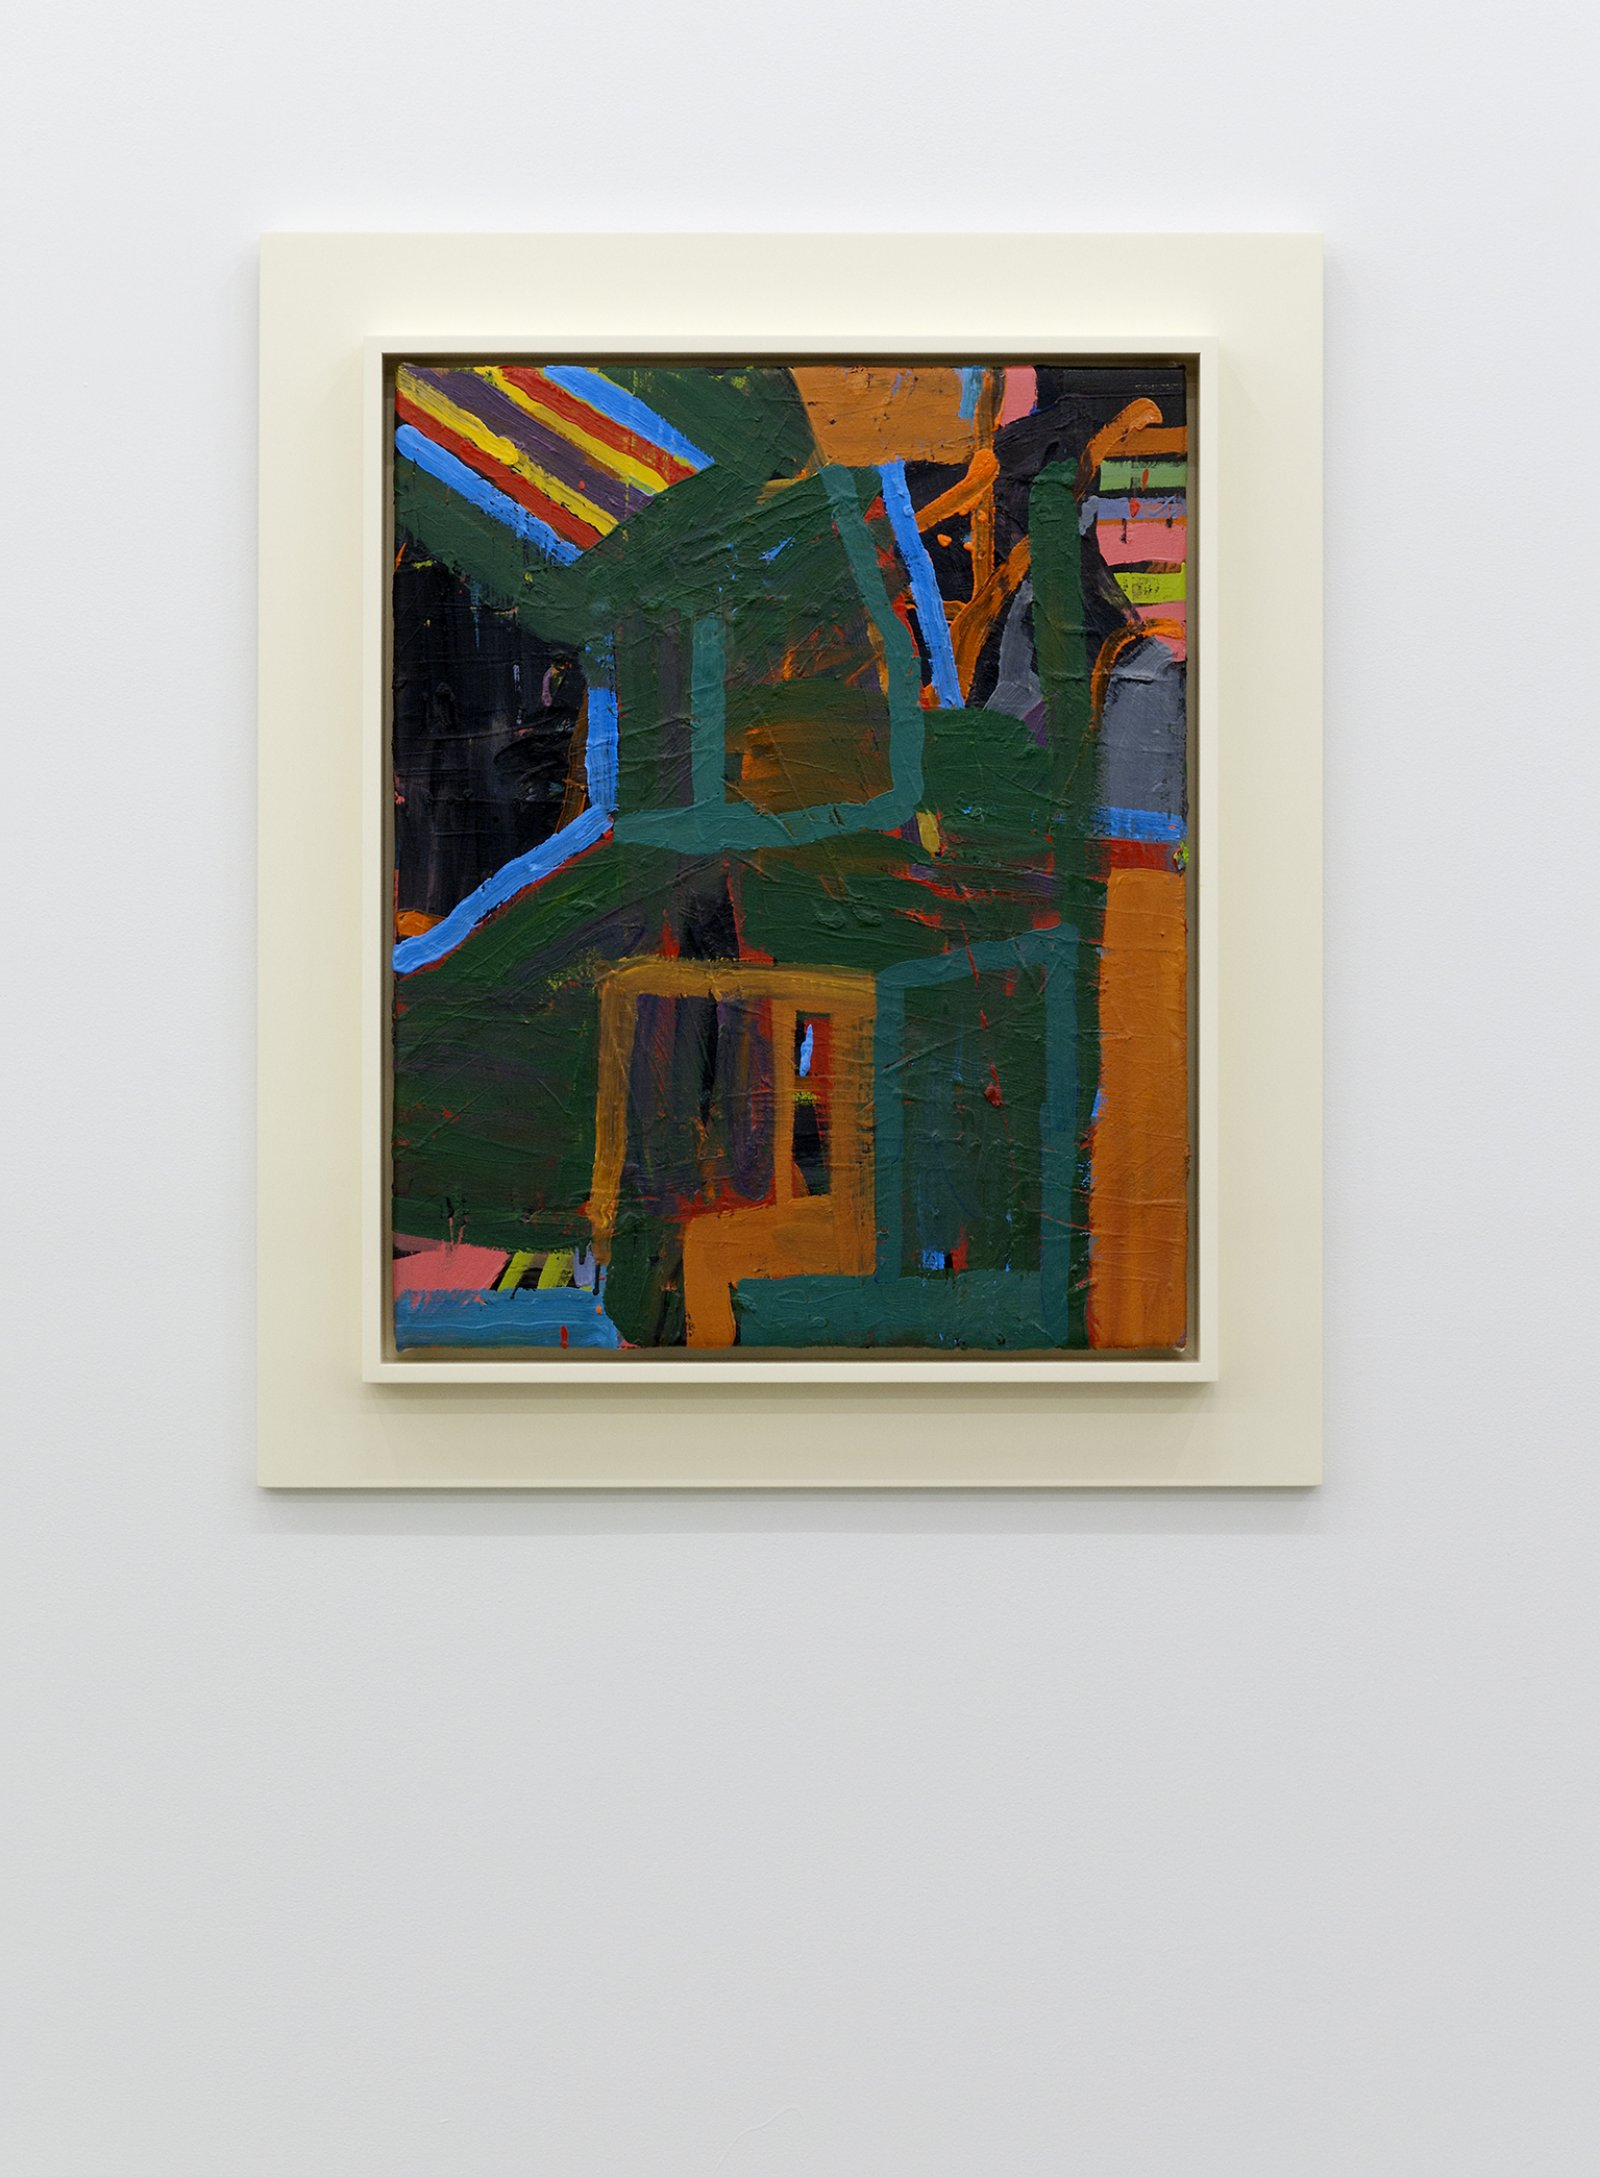 ​Damian Moppett, Untitled Abstraction (Green Box), 2010, oil on canvas and wood frame, 35 x 30 in. (88 x 76 cm) by Damian Moppett